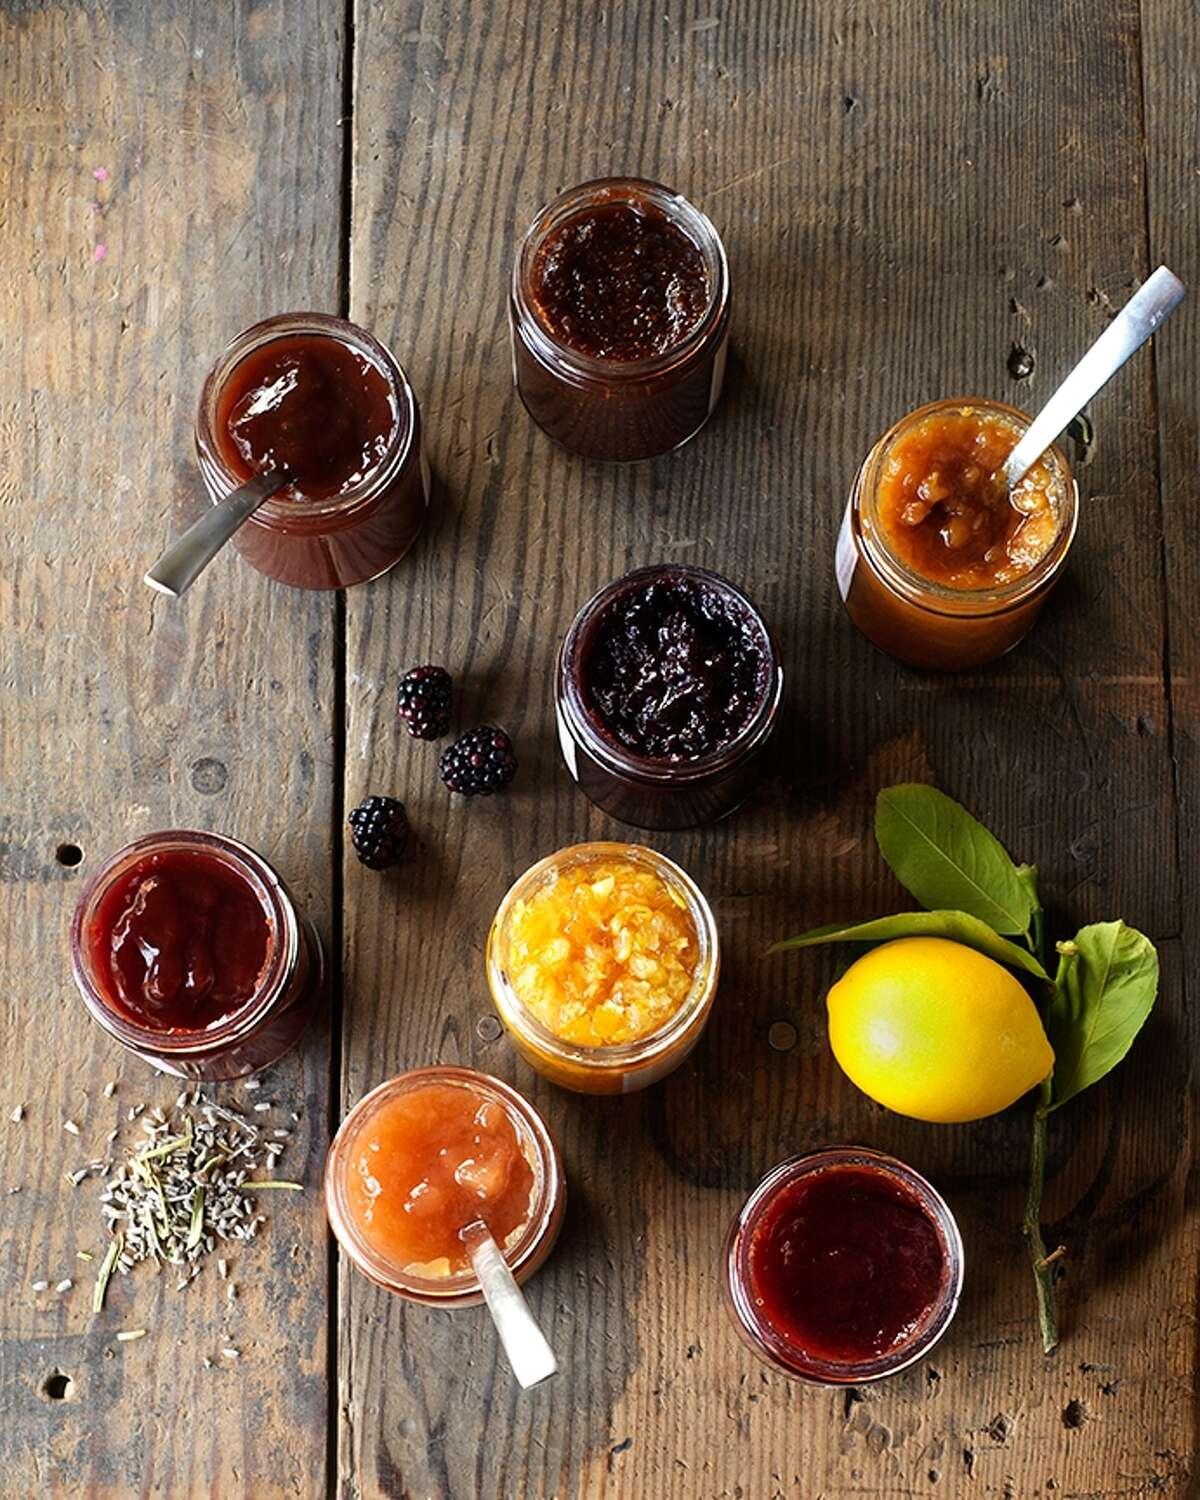 Clif Family Kitchen's preserves line includes Meyer lemon marmalade with a fine mix of bitter and sweet.